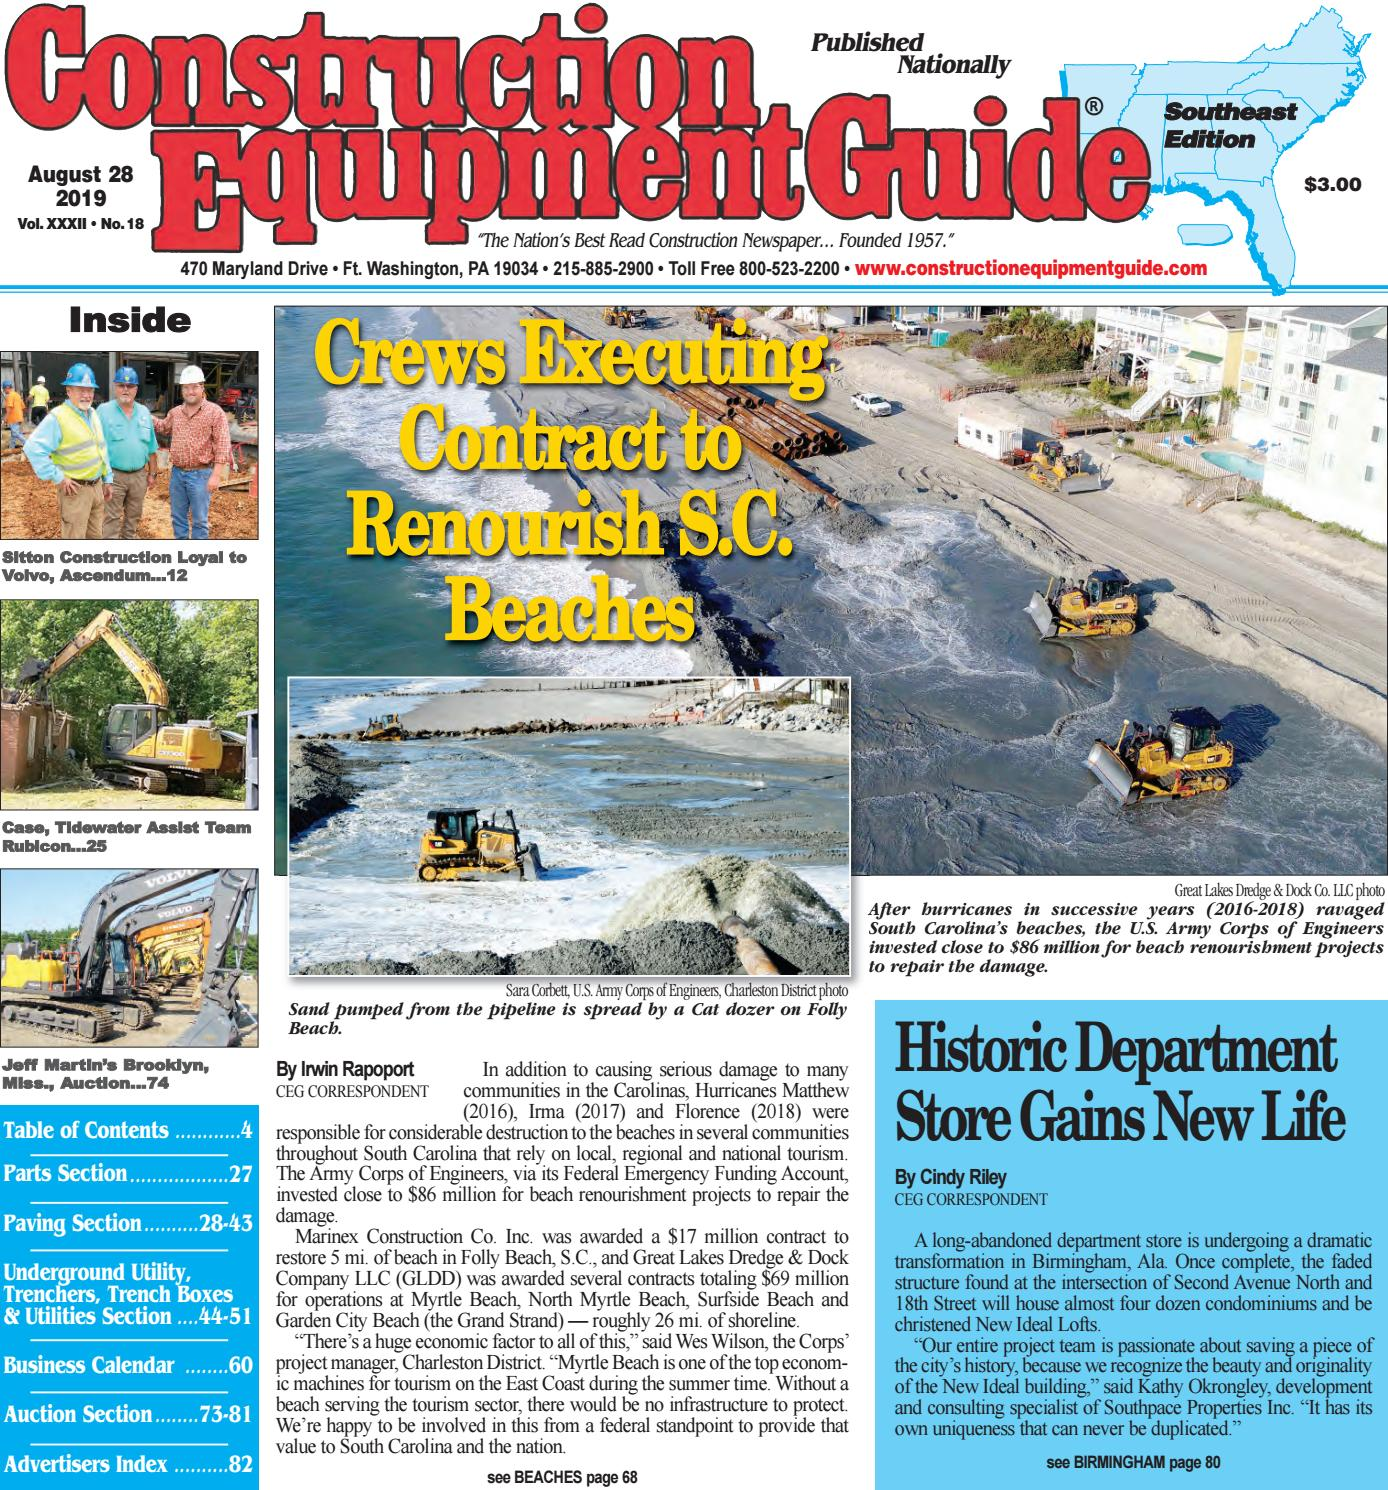 Southeast 18 August 28, 2019 by Construction Equipment Guide